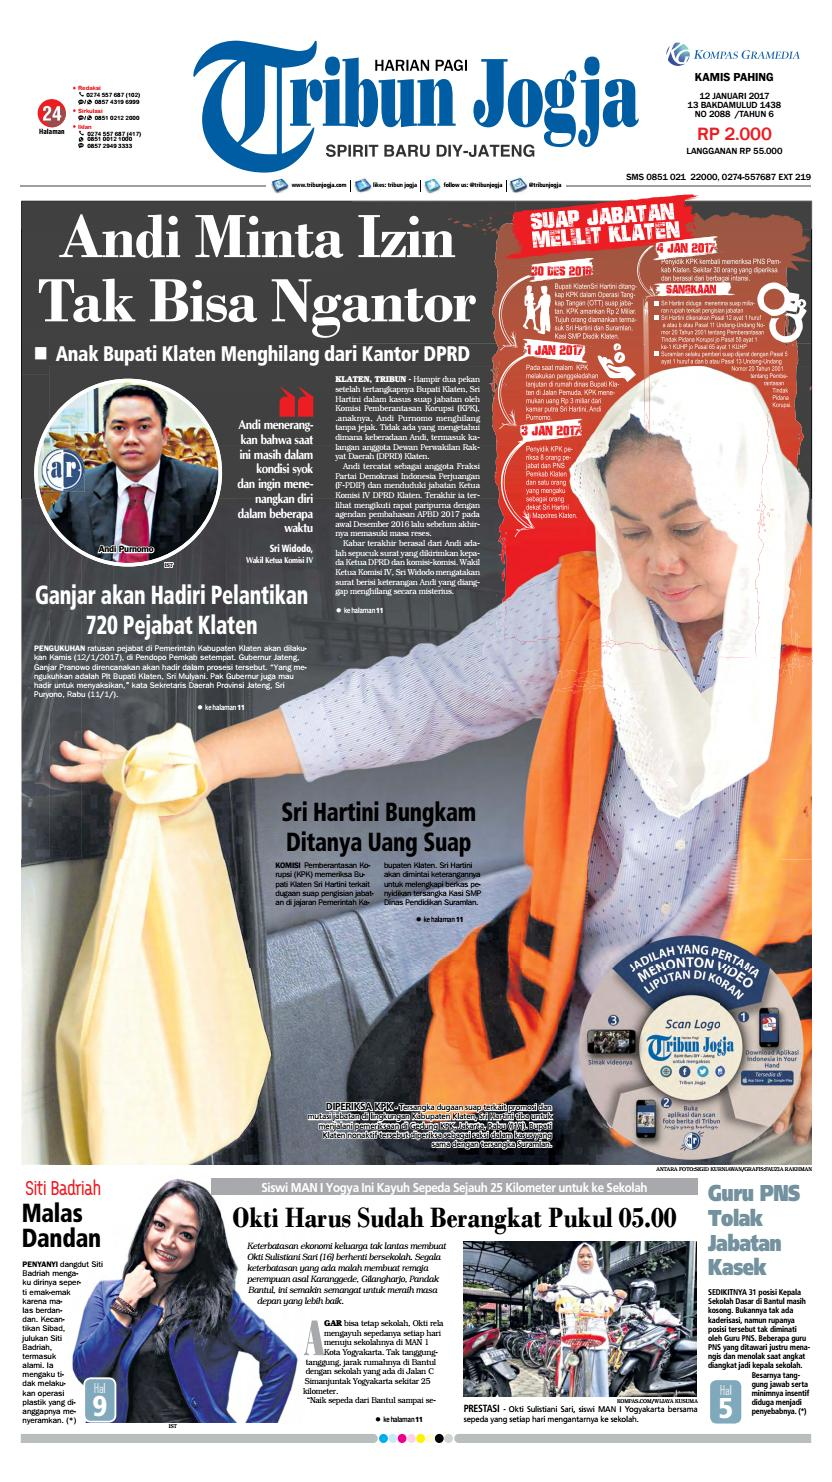 Tribunjogja 12 01 2017 By Tribun Jogja Issuu Produk Ukm Bumn Permen Tape Ladida